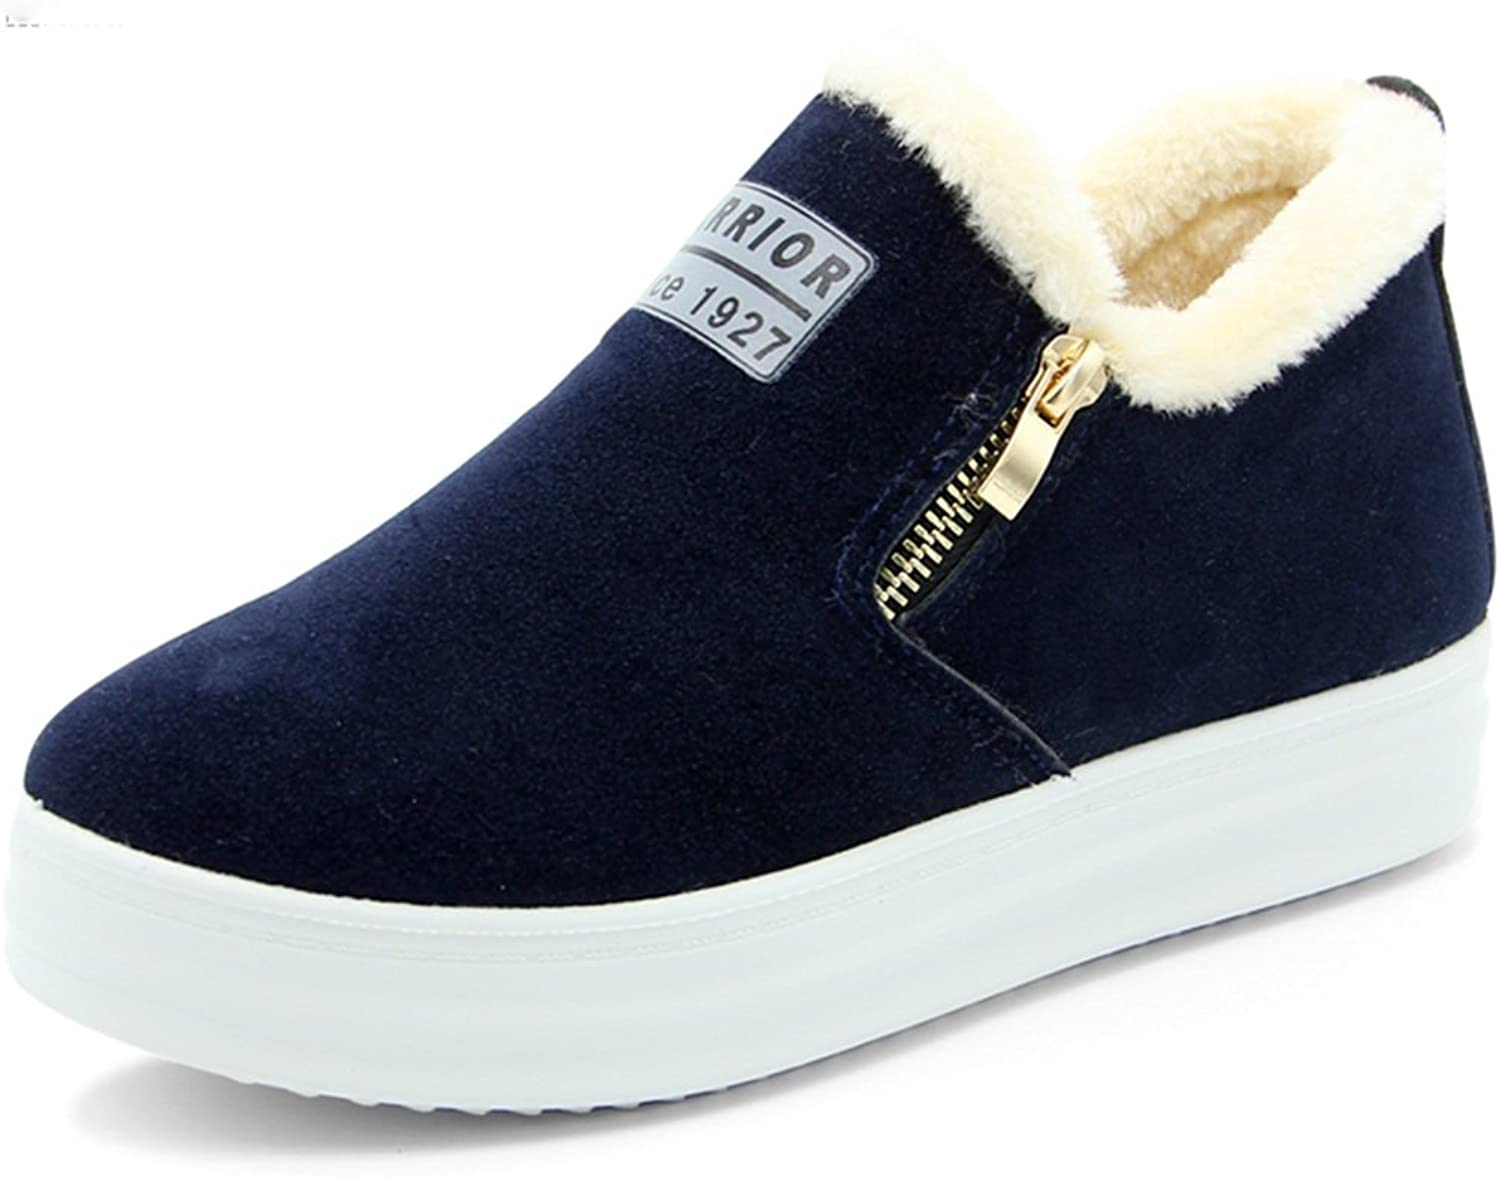 Fashion Sneaker, Winter Warm Lace Up Ankle Sneakers Fashion Flat Platform Sneakers High Top Winter shoes With Fur Lining For Women ( color   Navy bluee , Size   6.5 B(M)US )